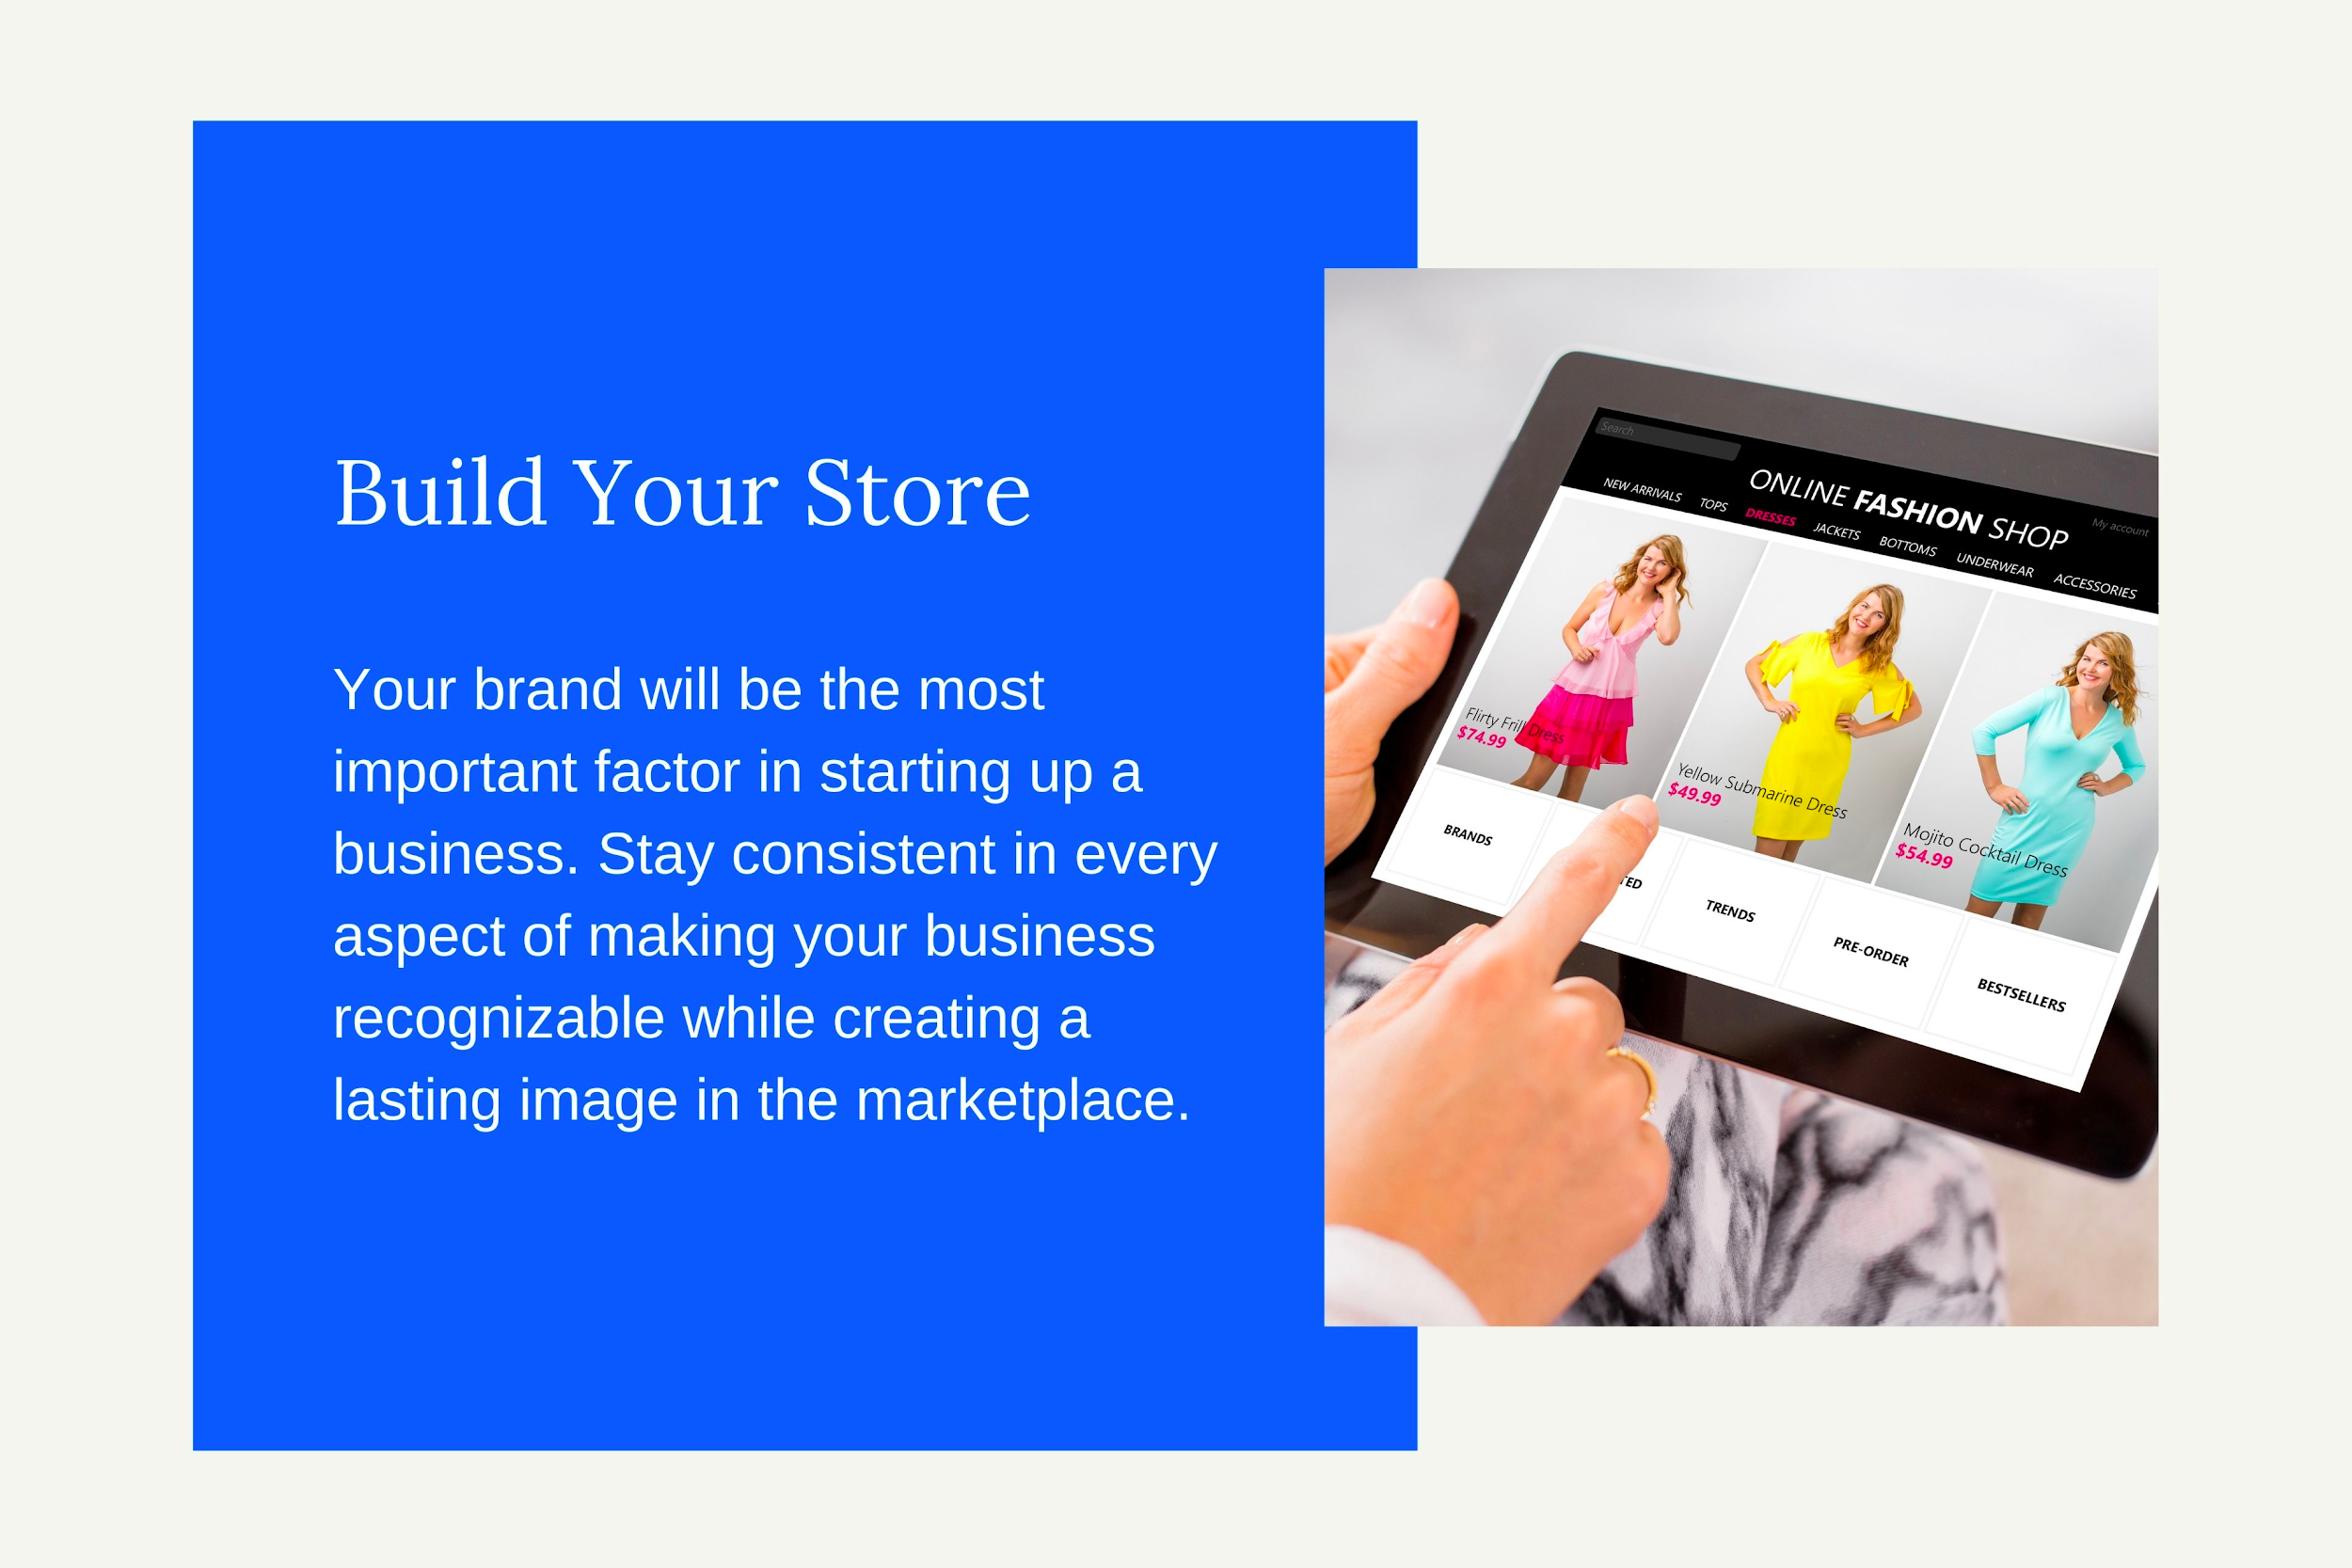 Build Your Store